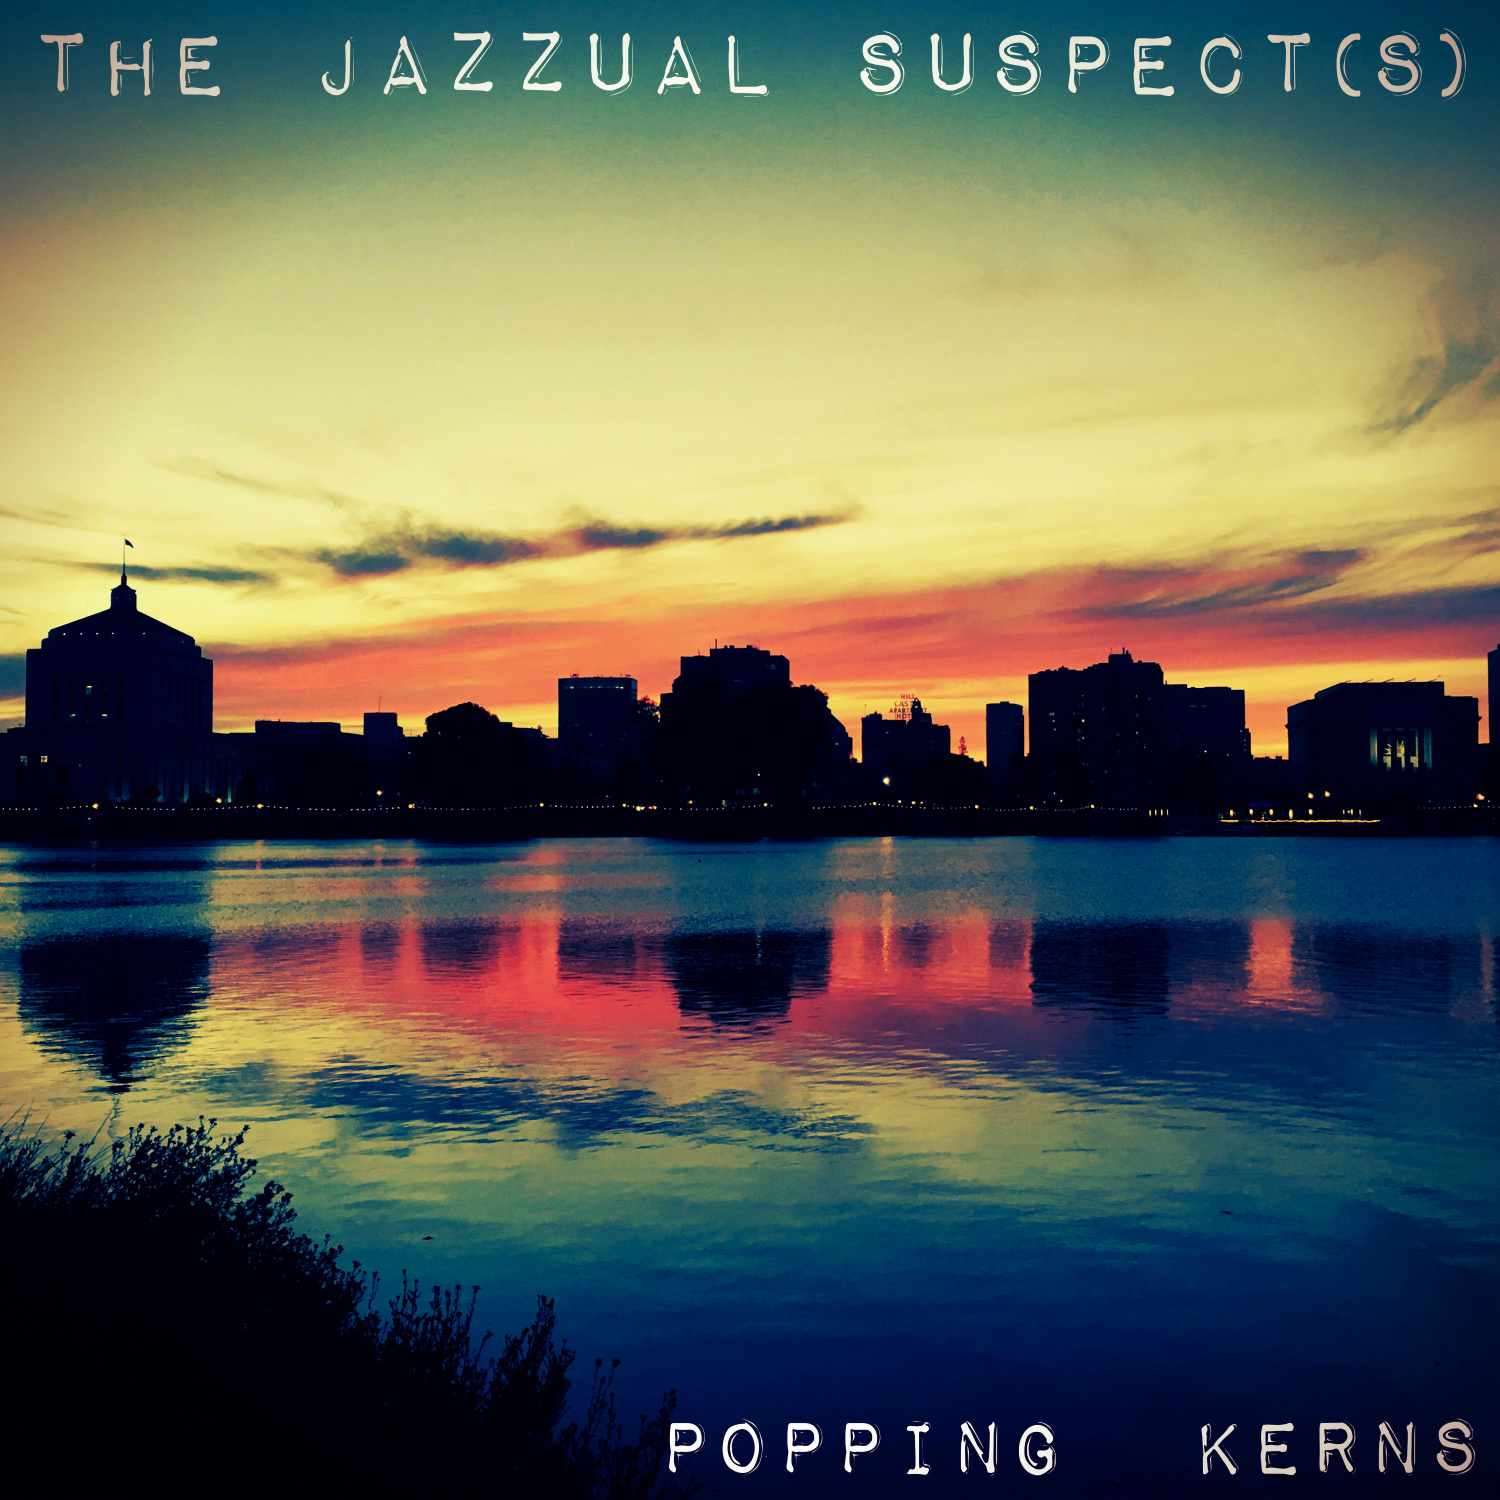 TJS_PoppingKerns_CoverArt_1500.jpg